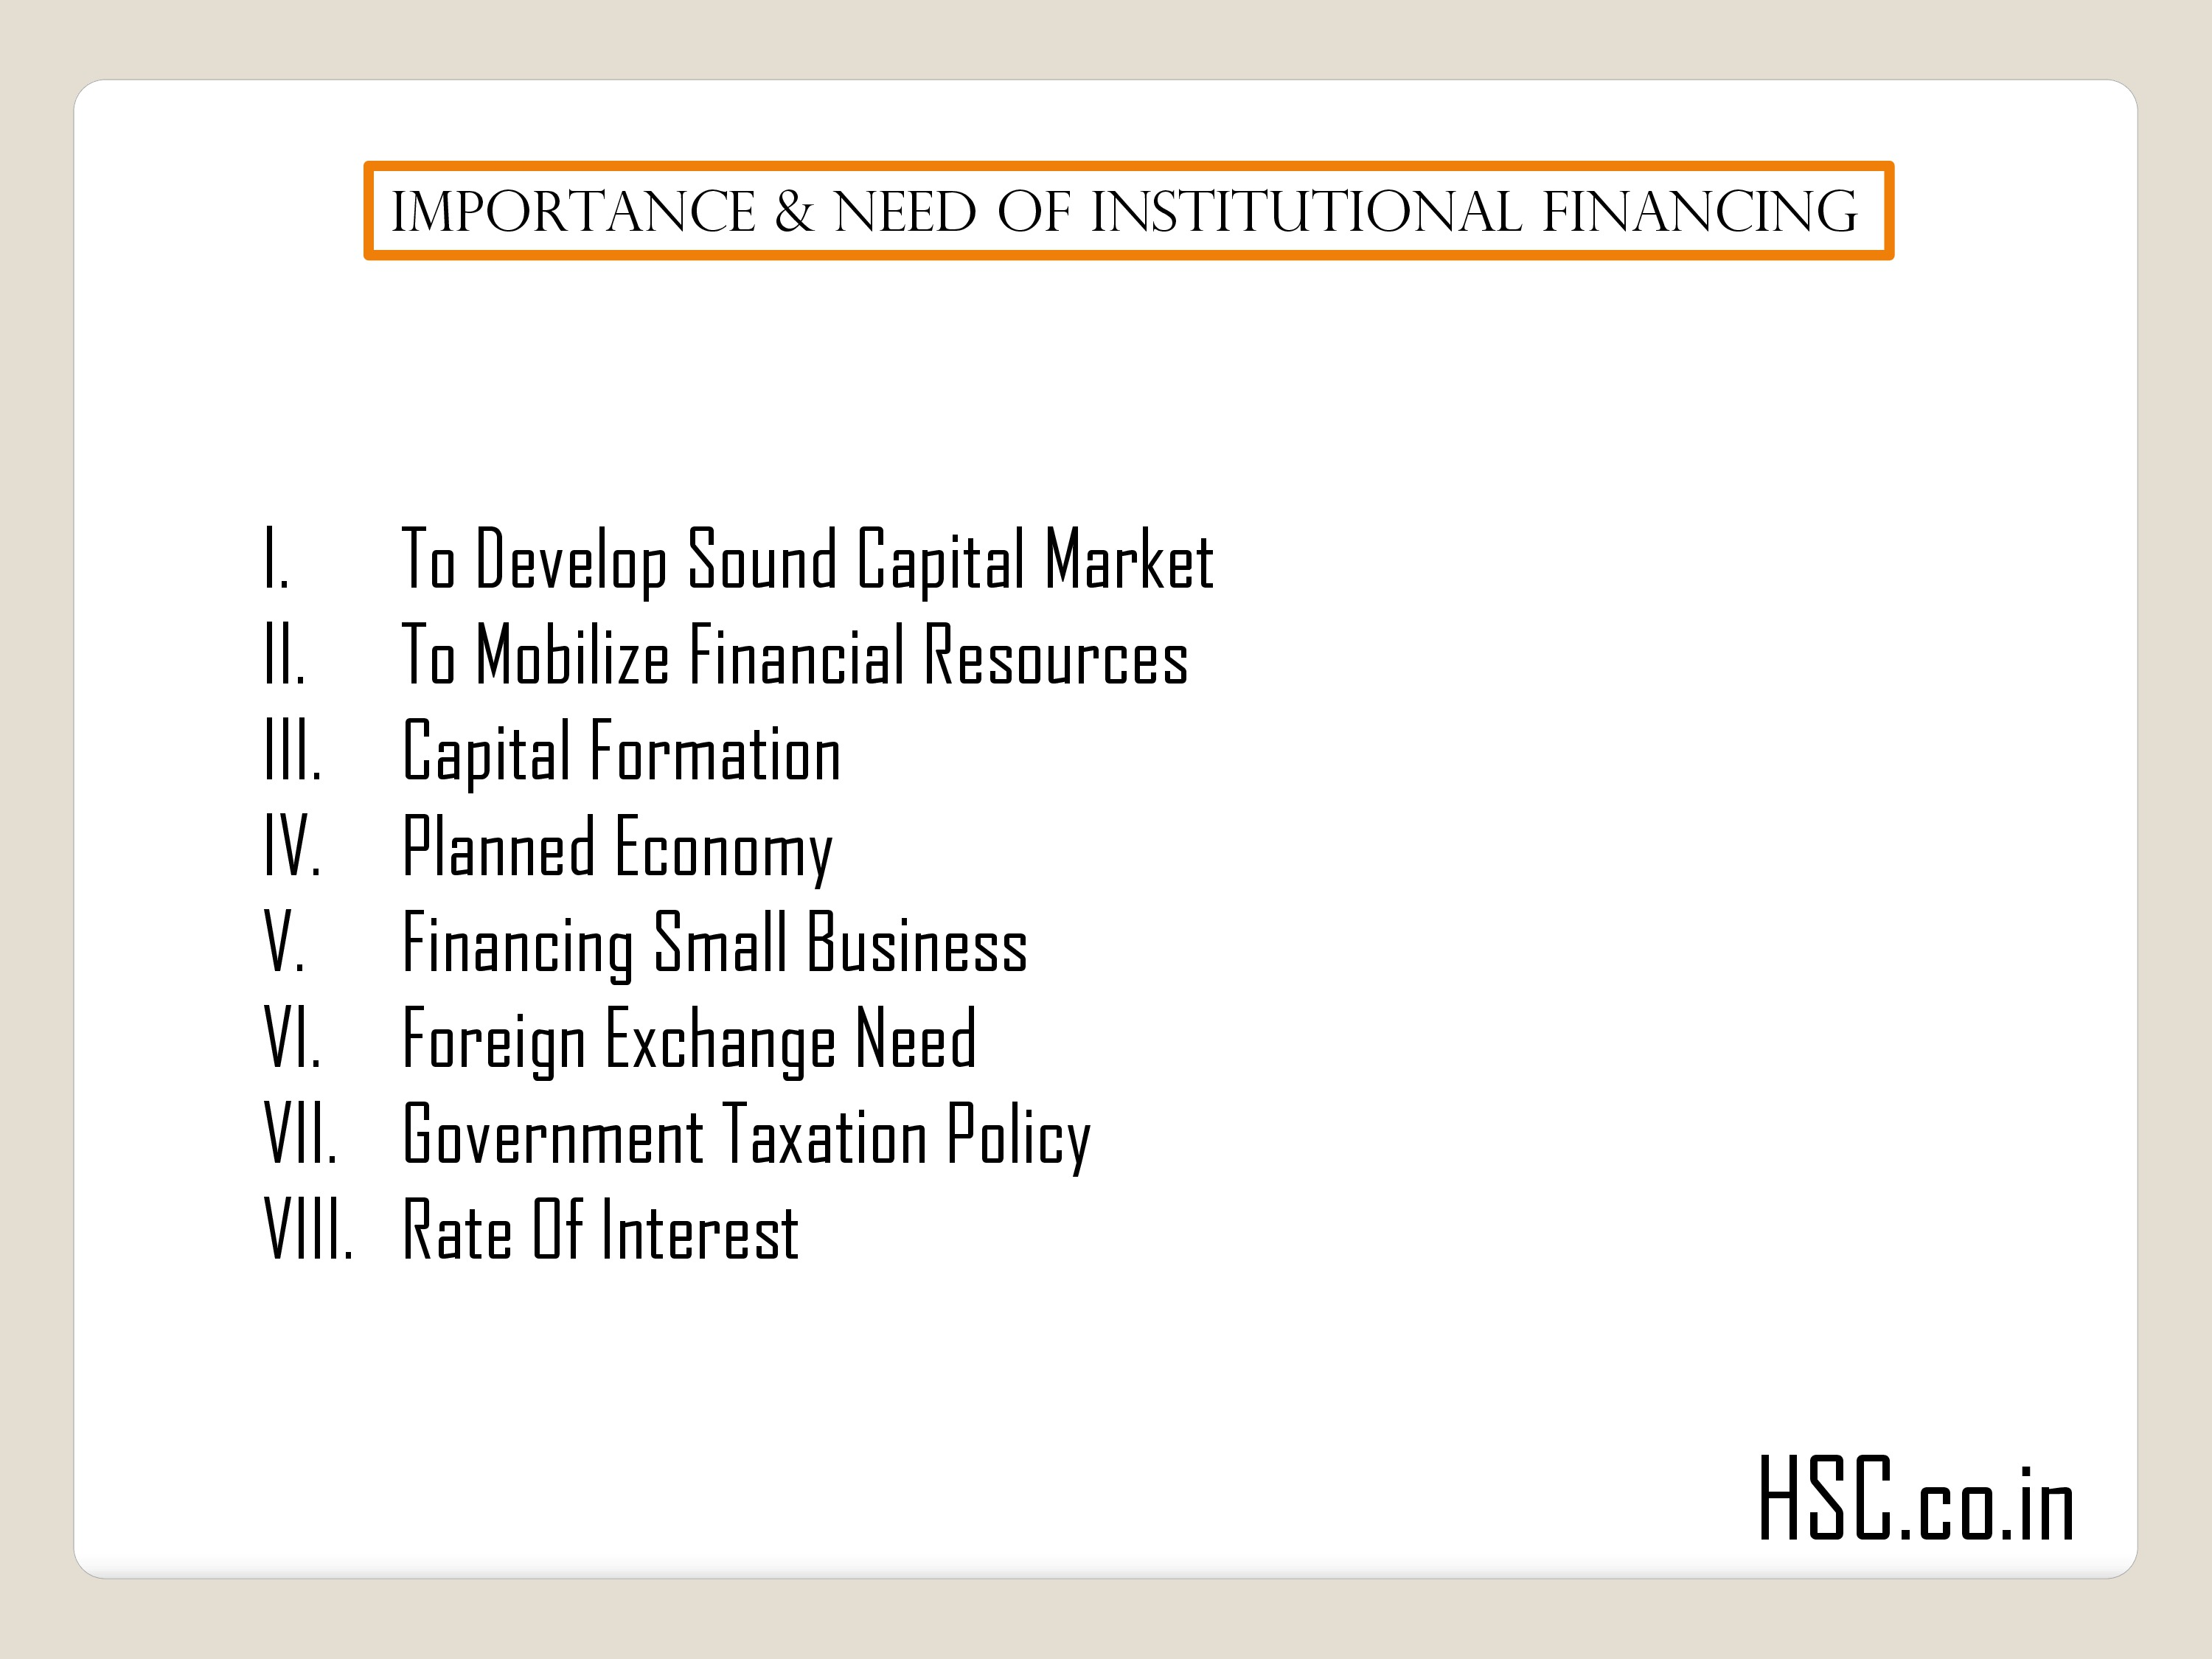 Importance & need of institutional financing